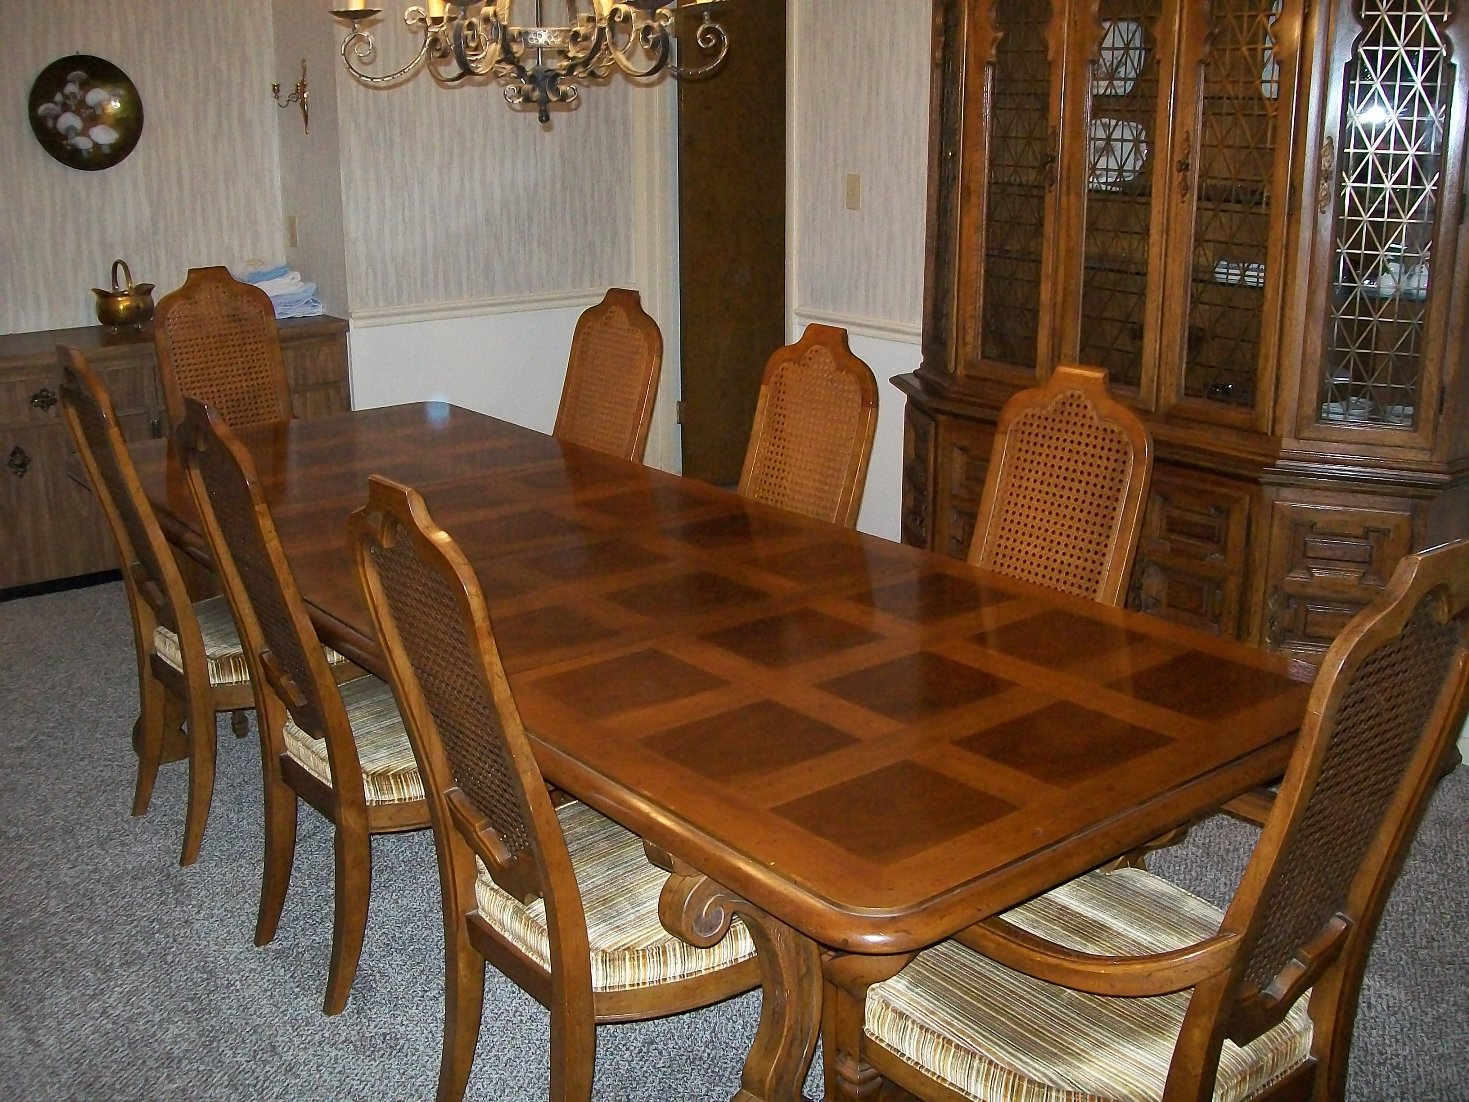 Dining room table pads maximum protection safety and elegant look 1 dining room table pads - Protective table pads dining room tables ...